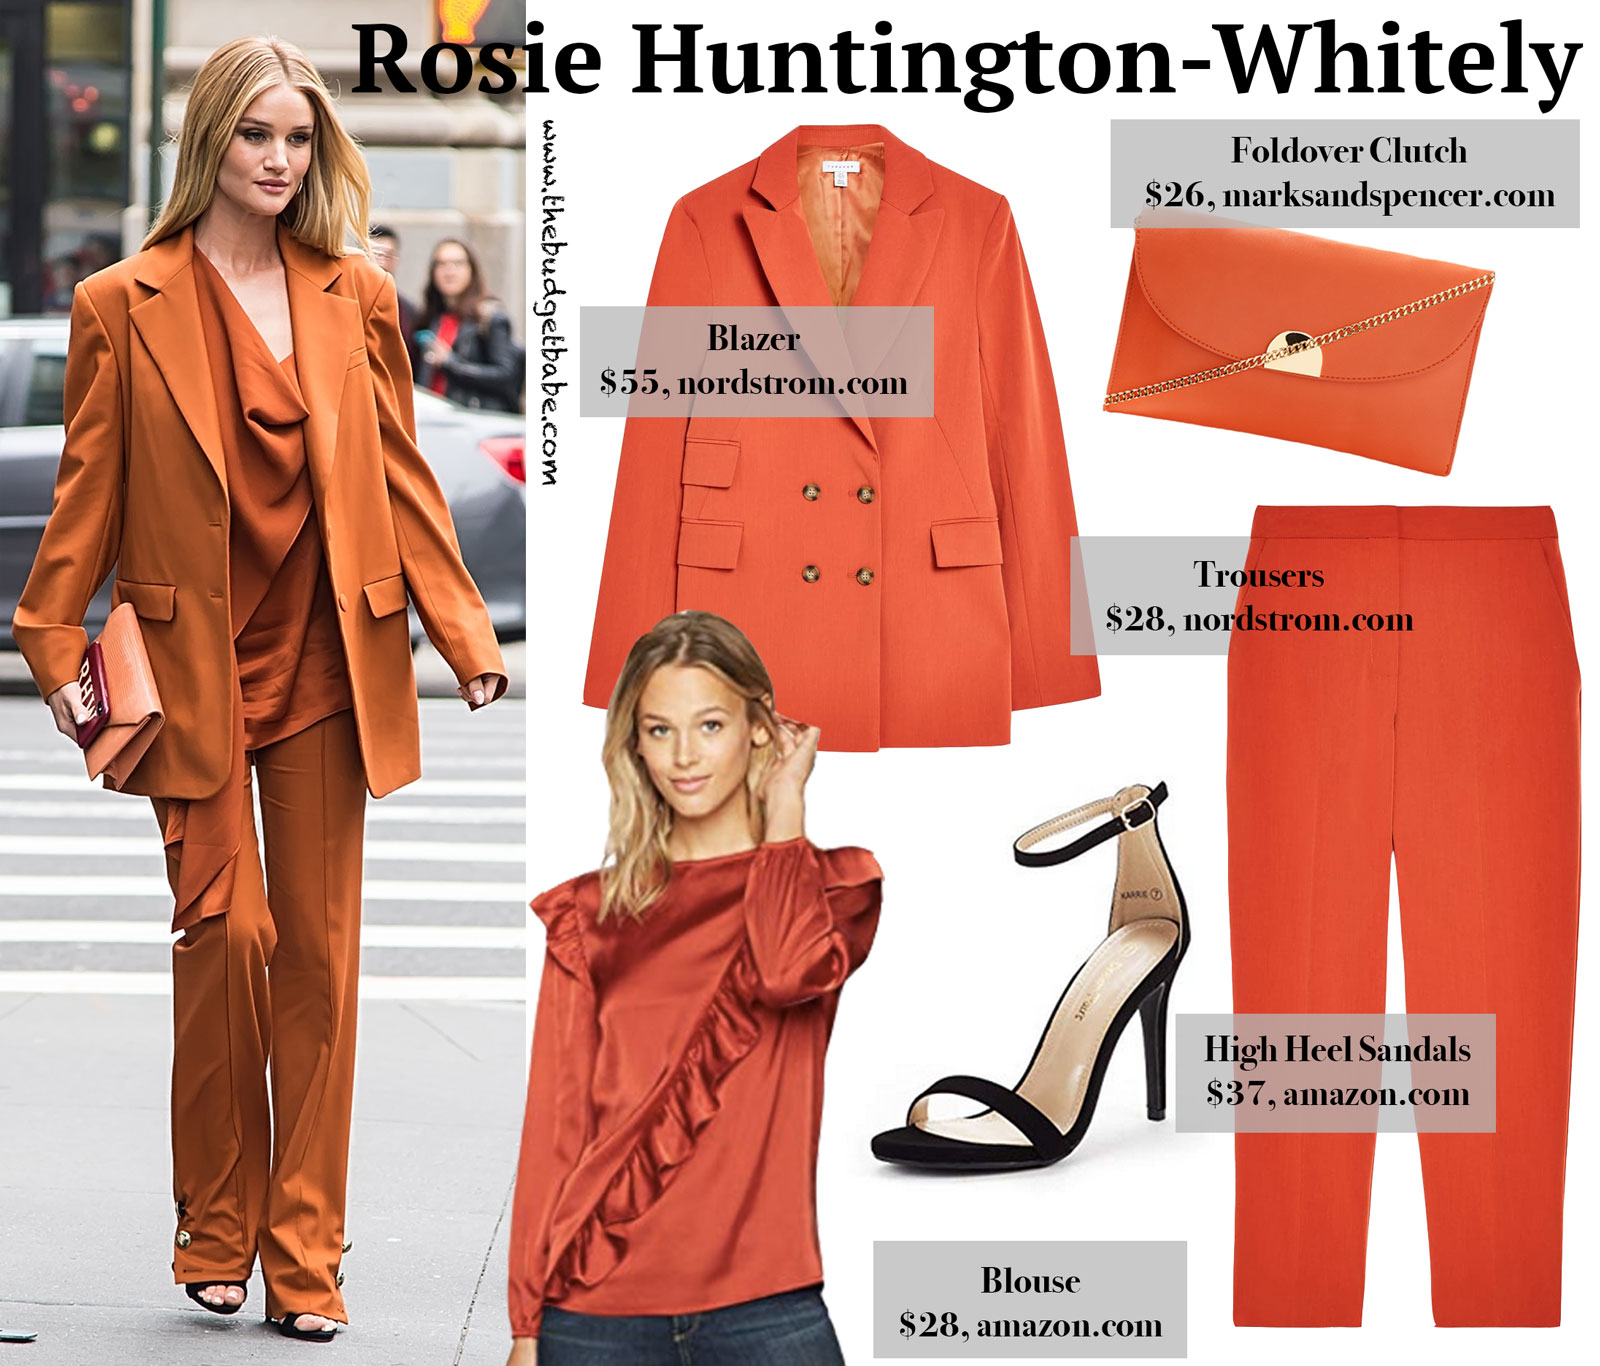 Rosie Huntington-Whitely Rust Orange Suit Look for Less